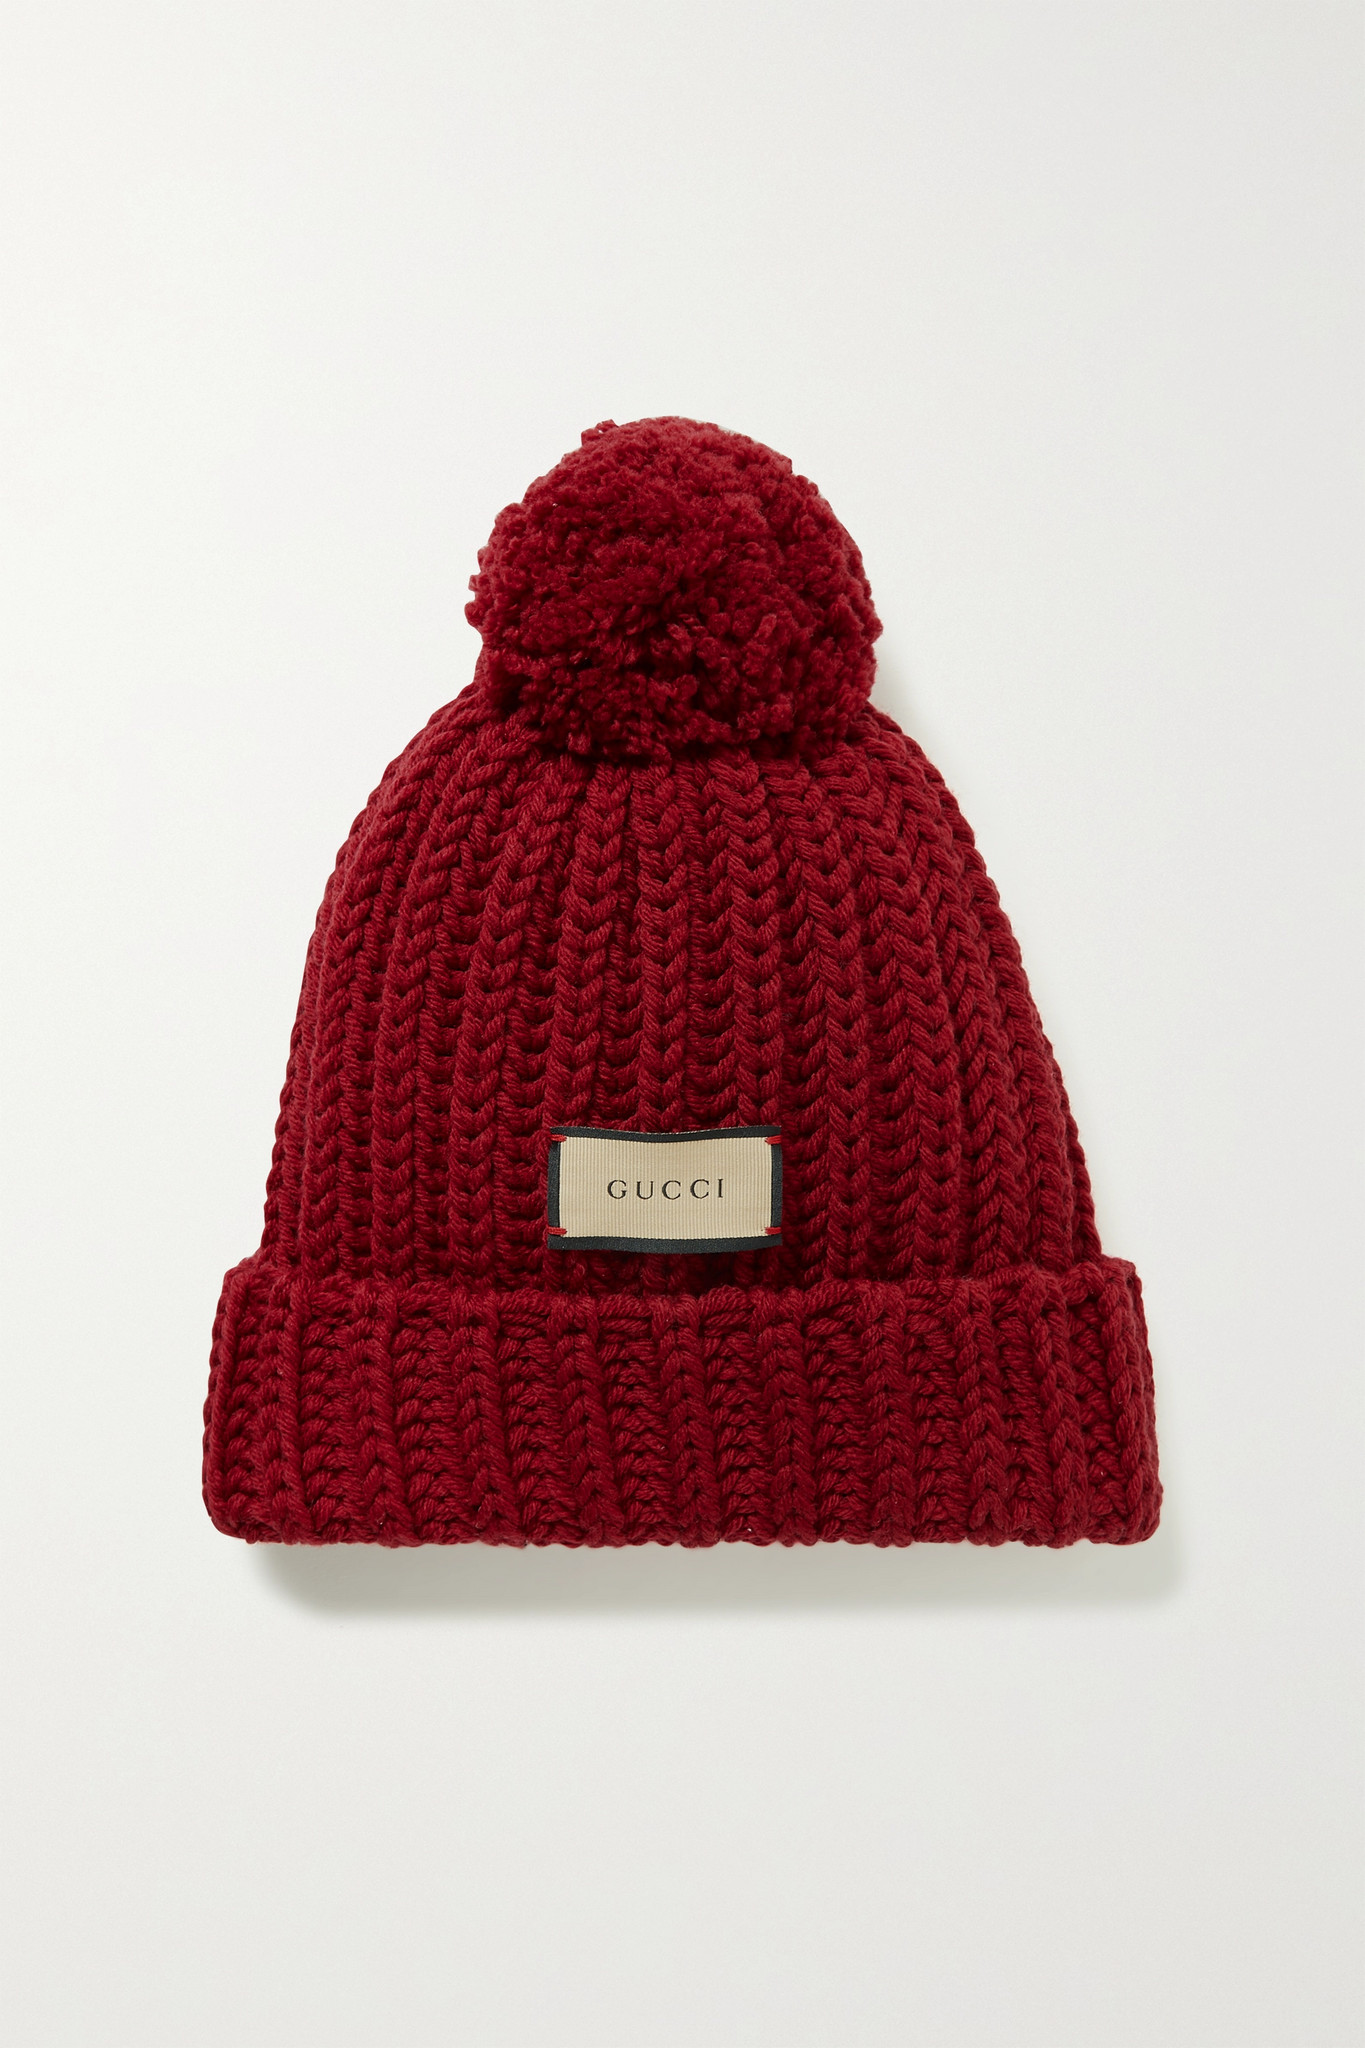 GUCCI - Pompom-embellished Ribbed Wool Beanie - Burgundy - L